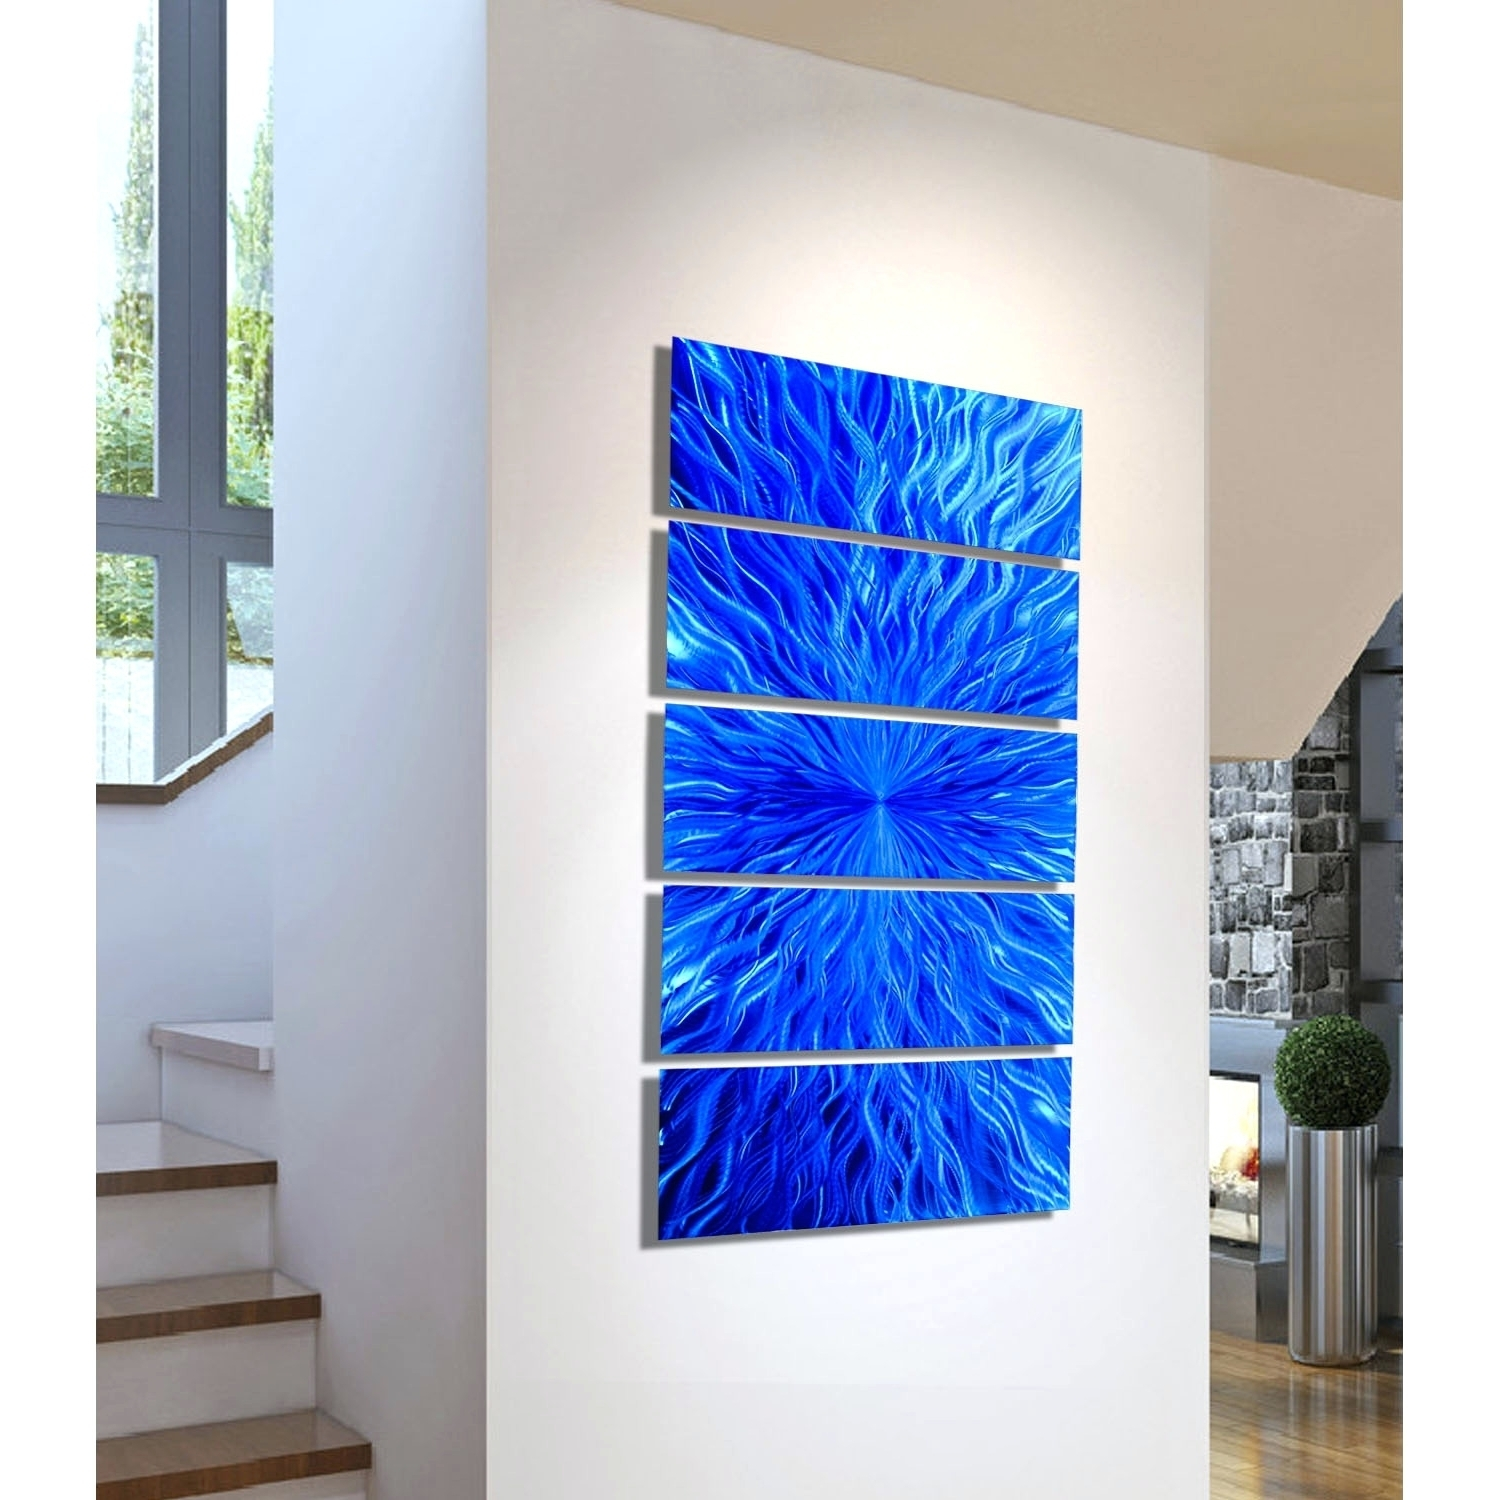 Contemporary Fused Gl Cute Blown Glass Wall Art – Wall Decoration Ideas Within Most Recent Blown Glass Wall Art (View 2 of 20)